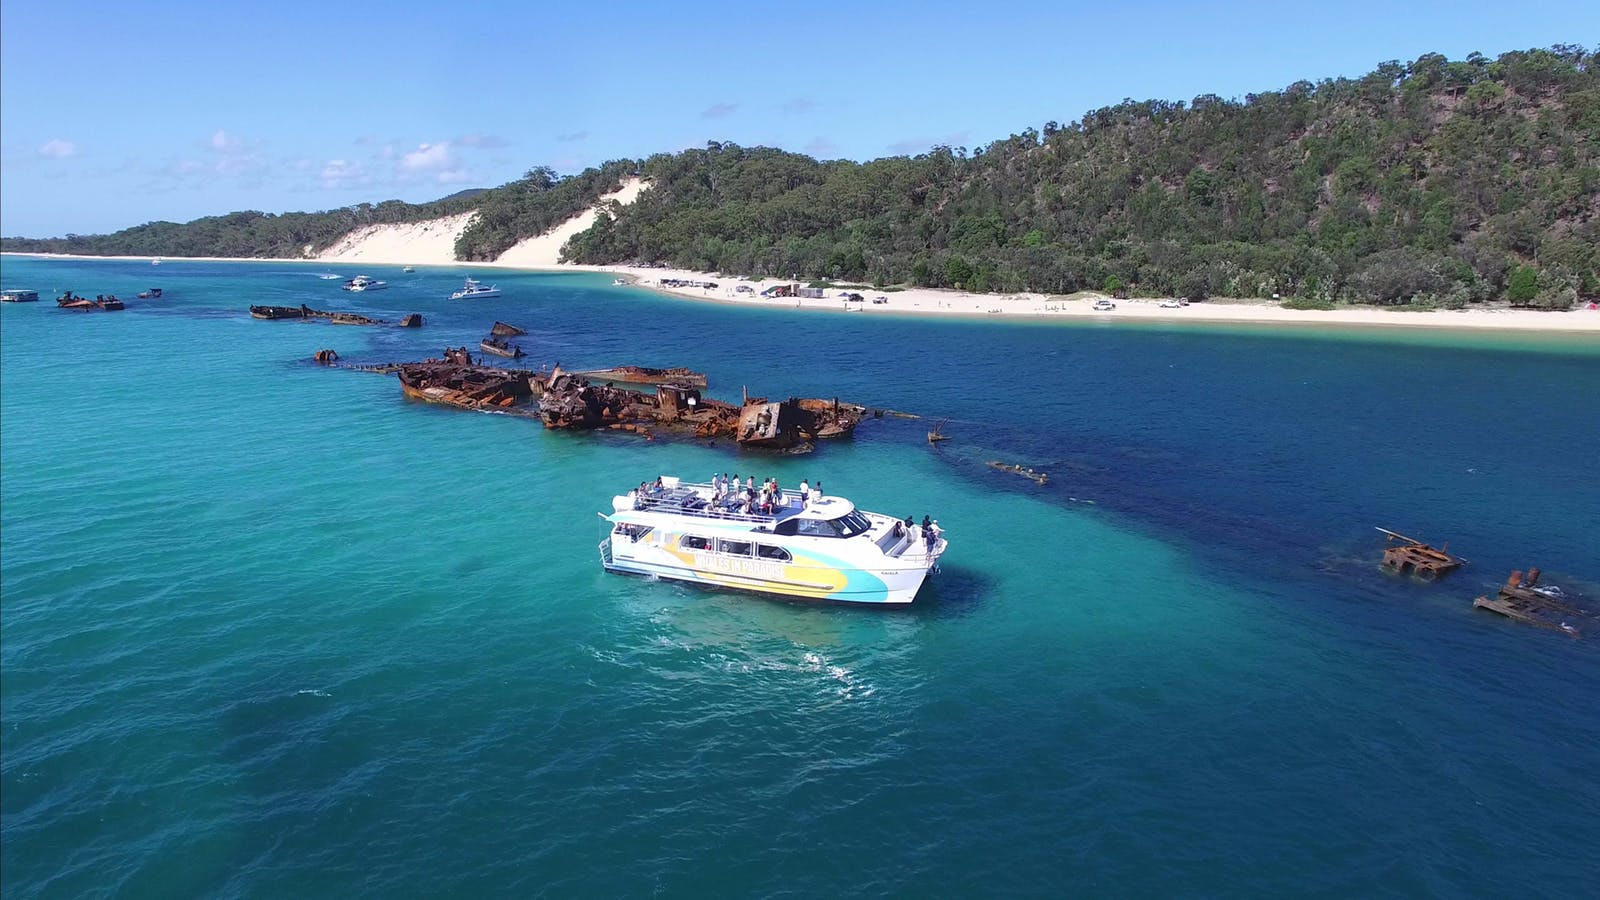 Snorkel the famous Tangalooma Wrecks on our day tour to Moreton Island